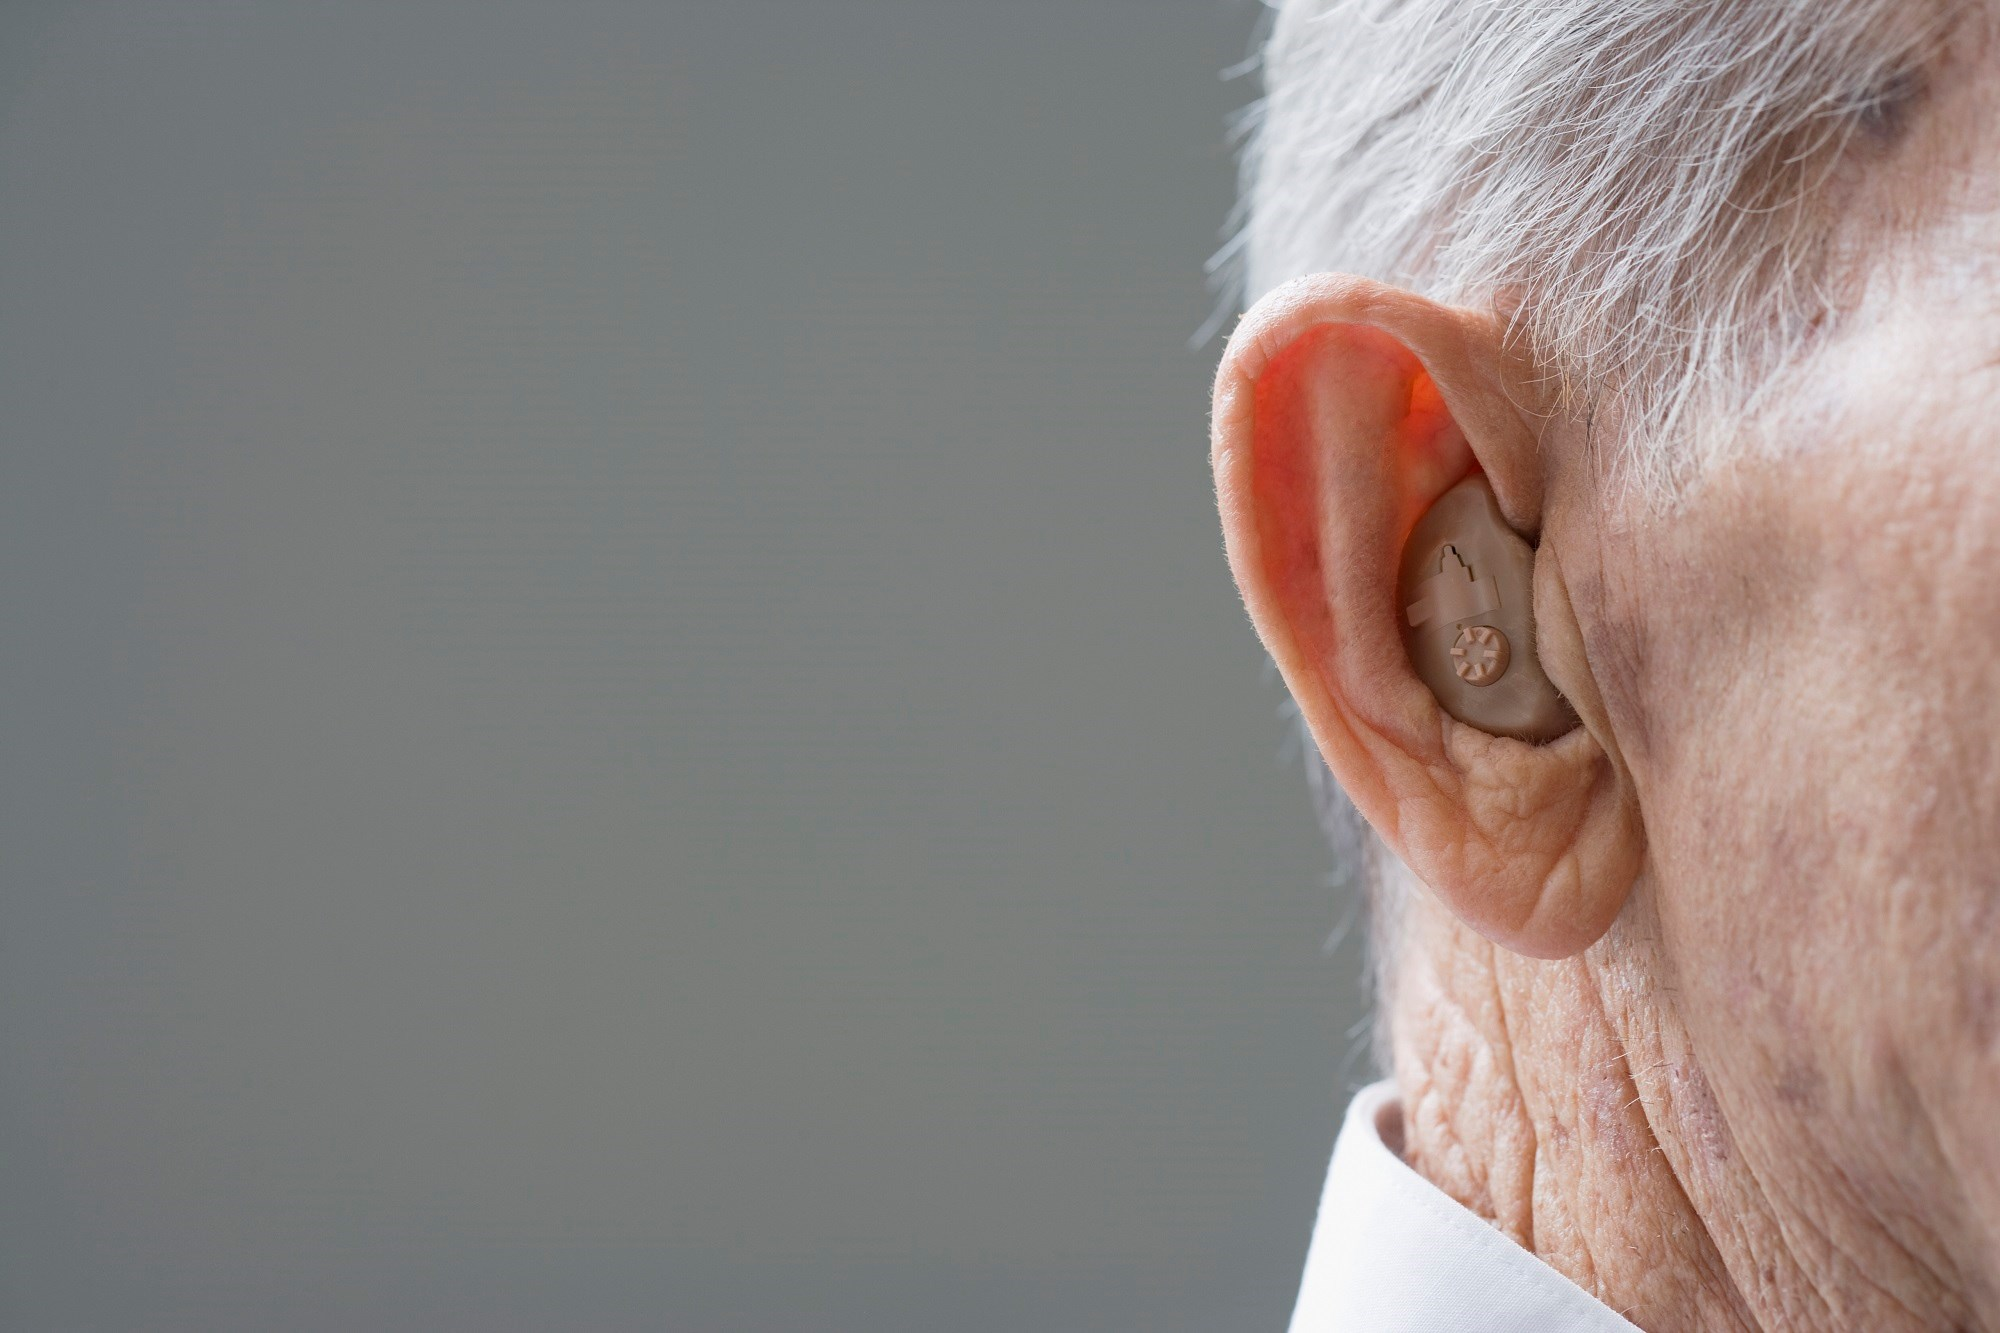 Clinical Depression Associated With Hearing Loss in Older Hispanic Populations